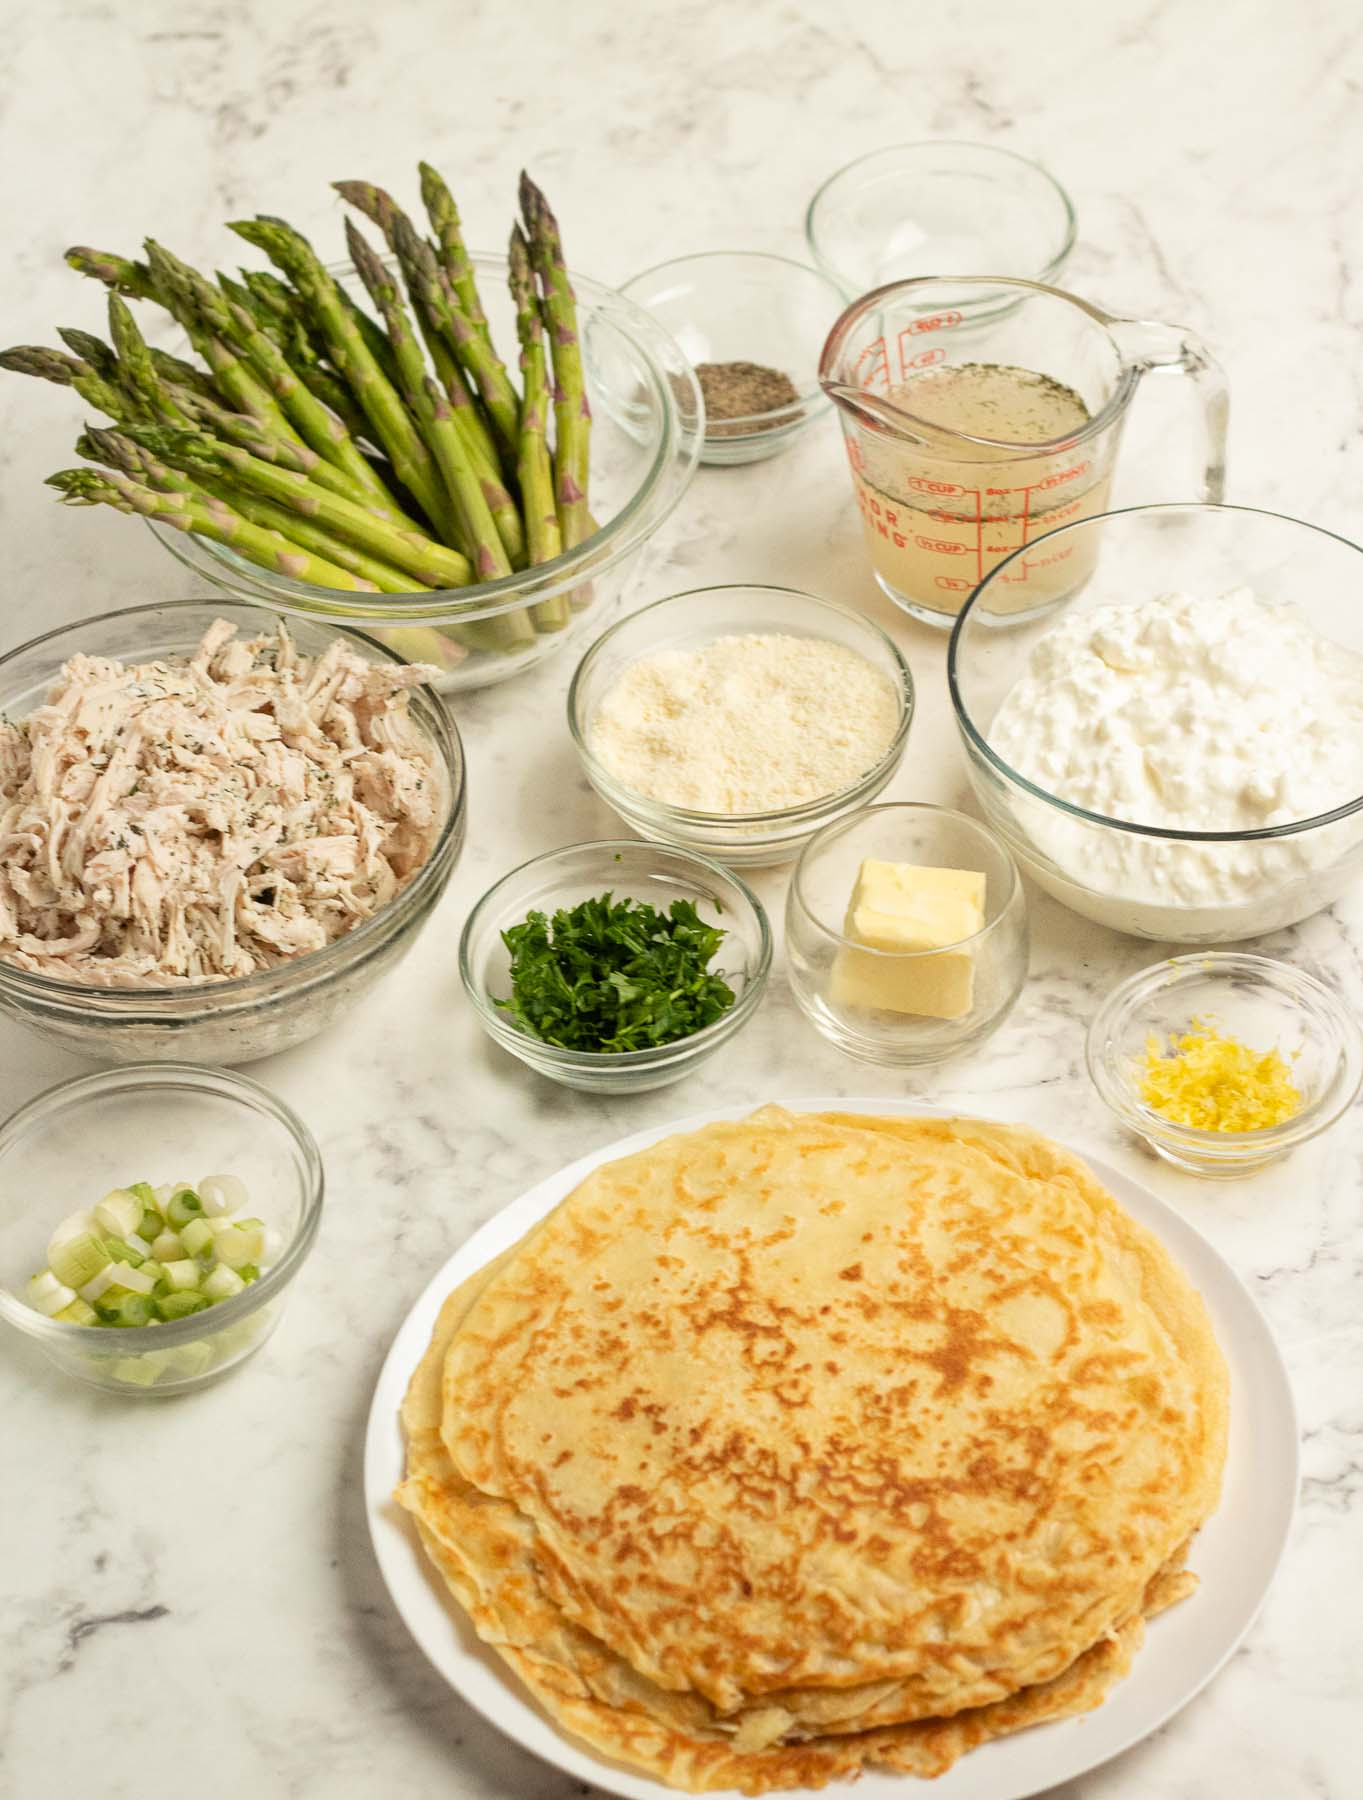 Ingredients for savory chicken crepes with asparagus.